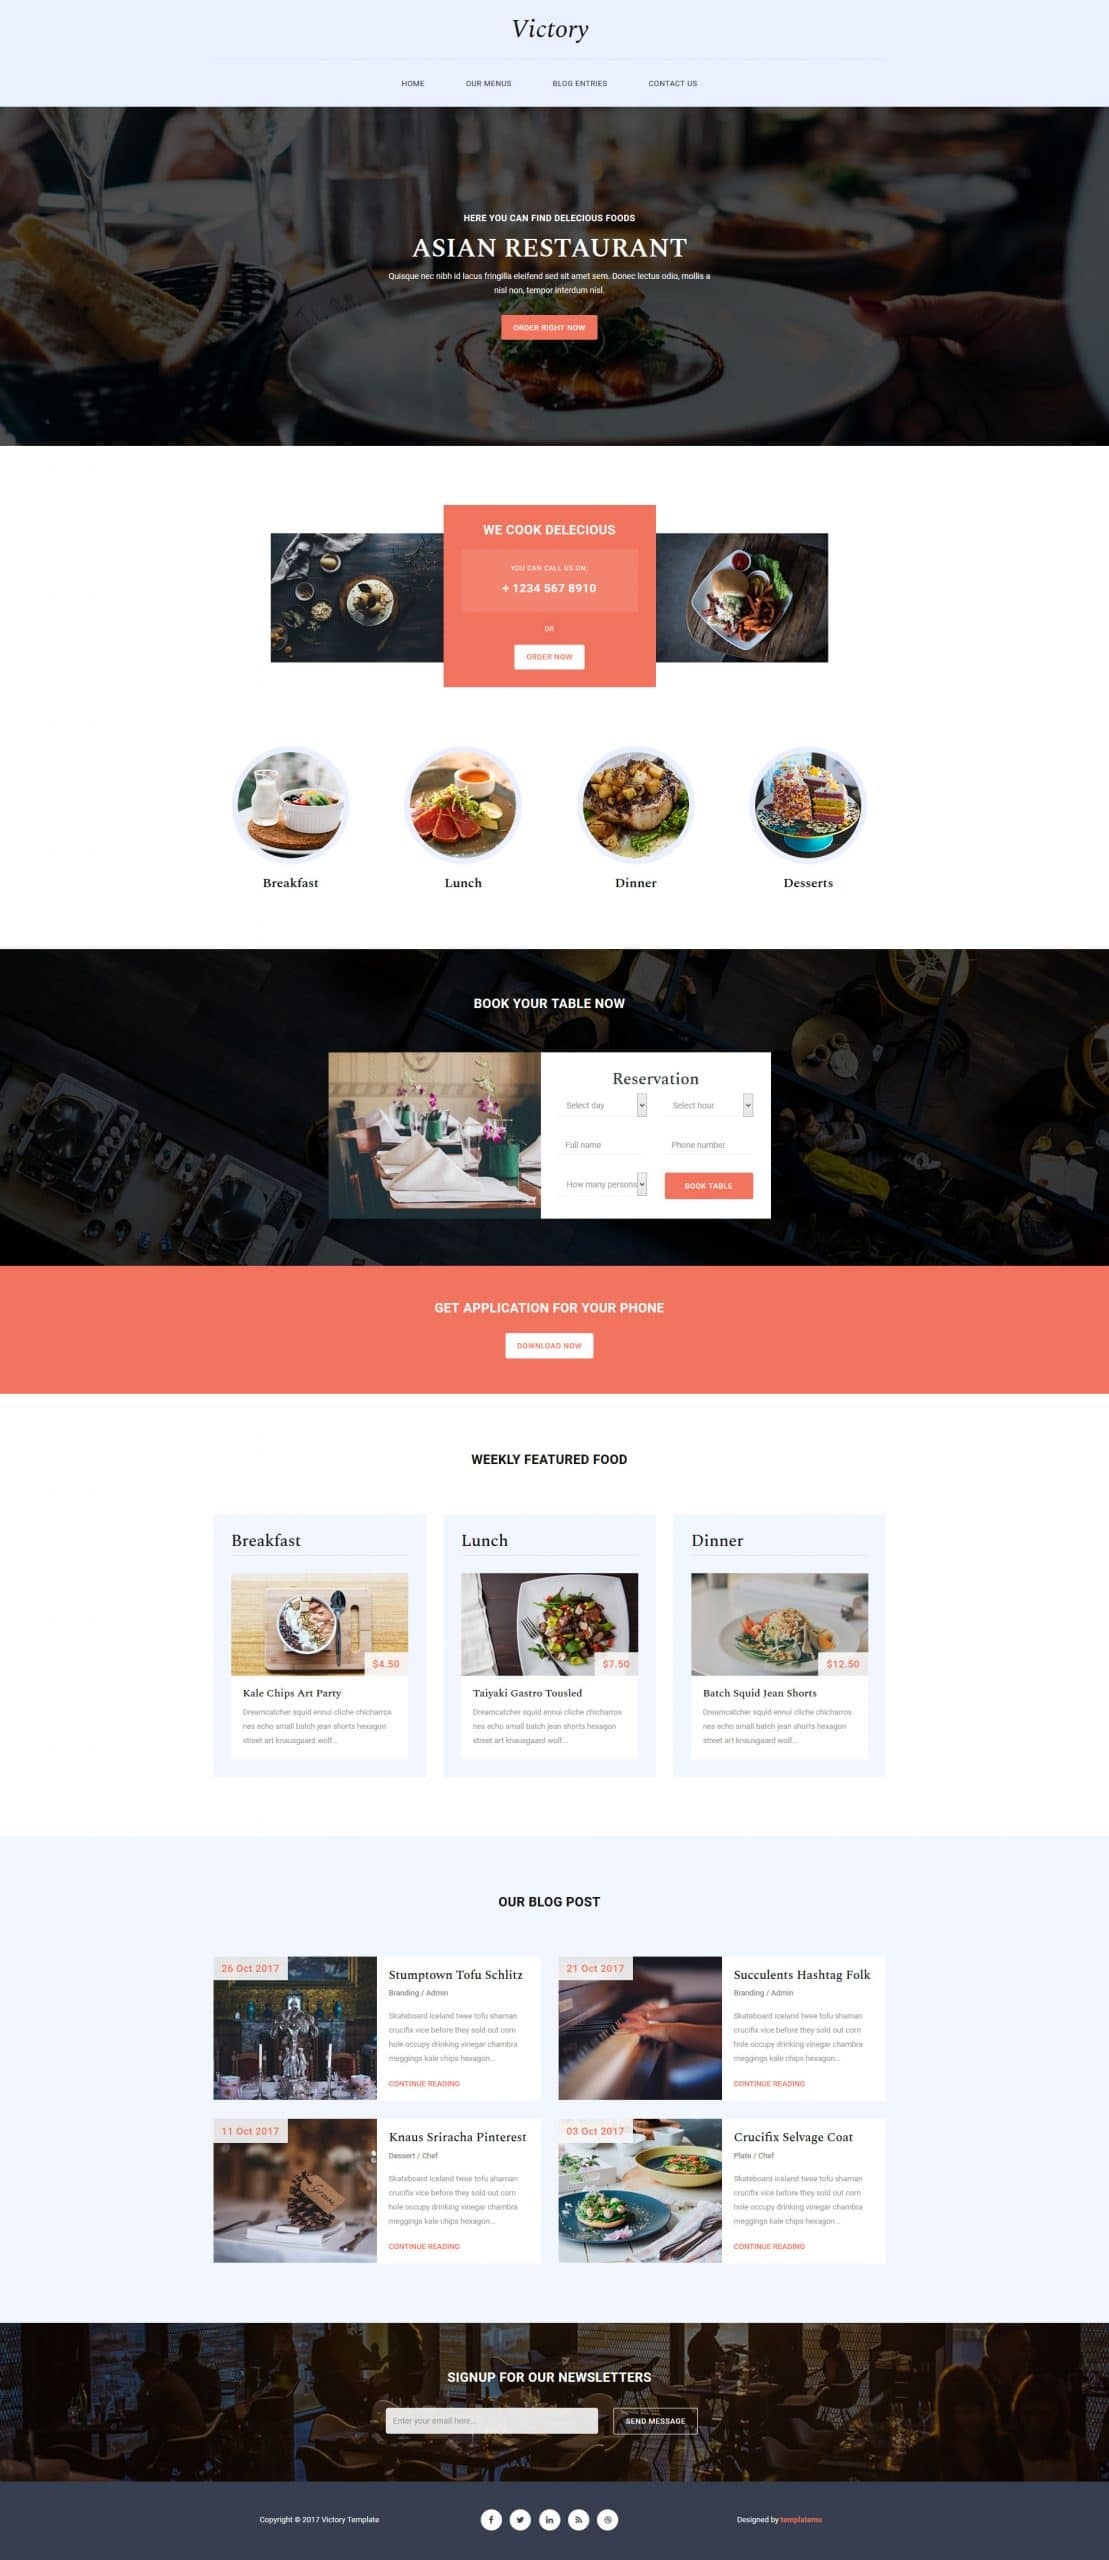 Victory - food and restaurant HTML template